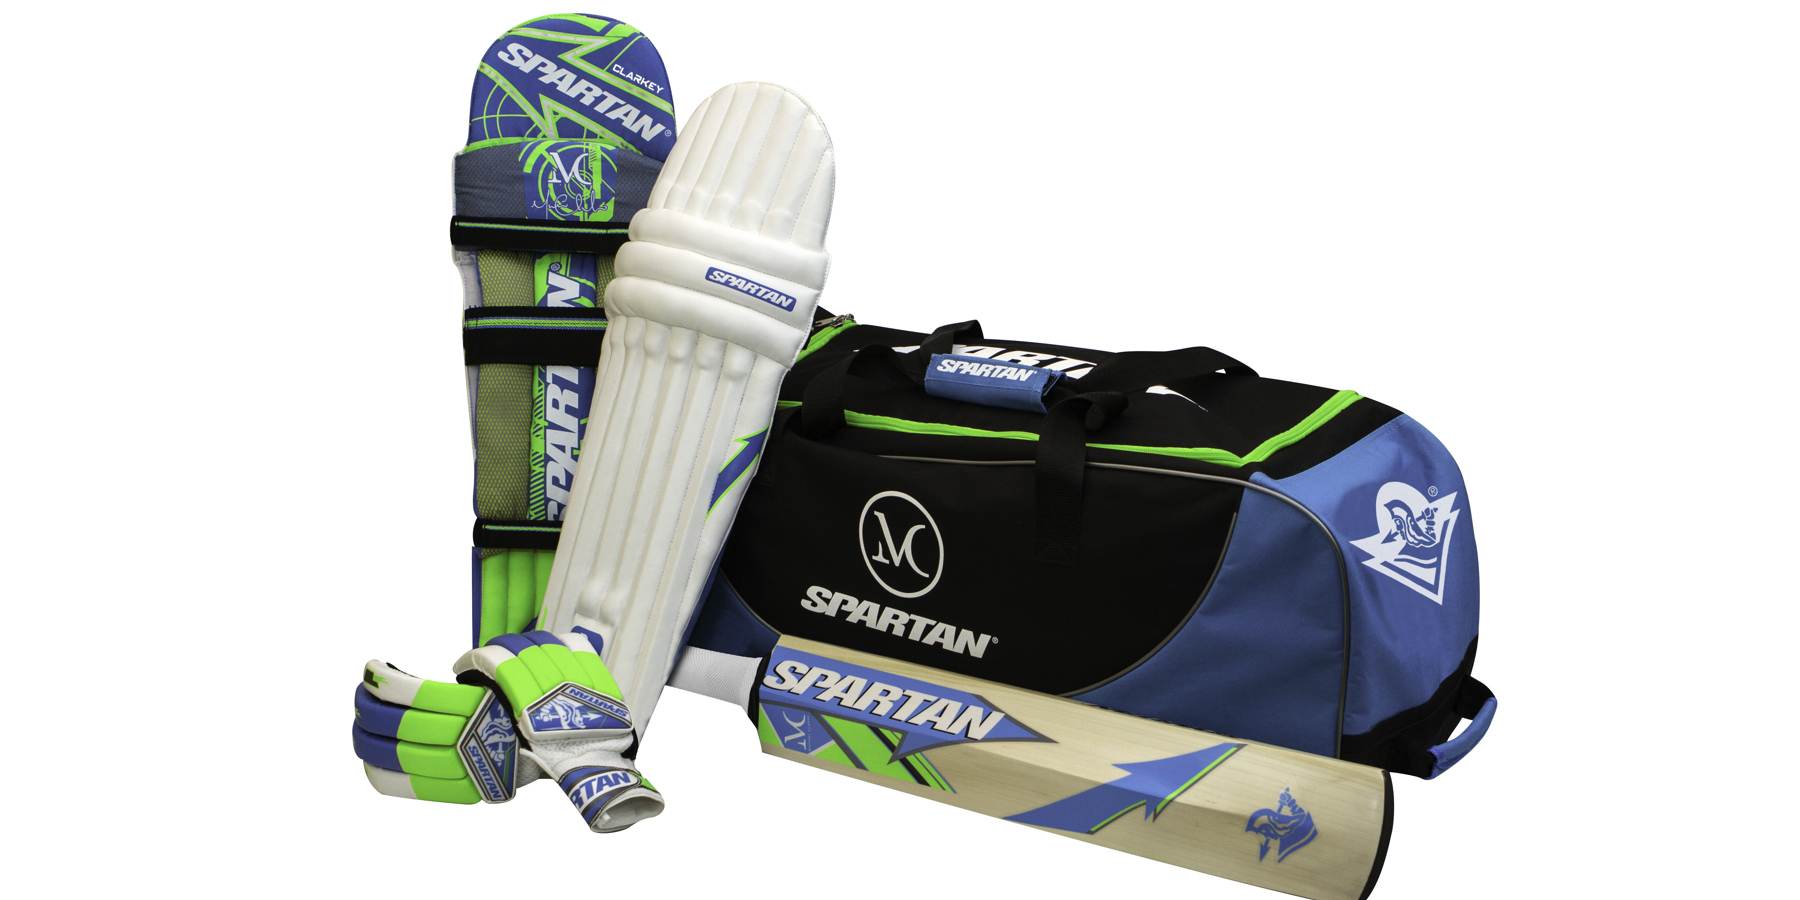 Cricket Kits Exporters Shrih